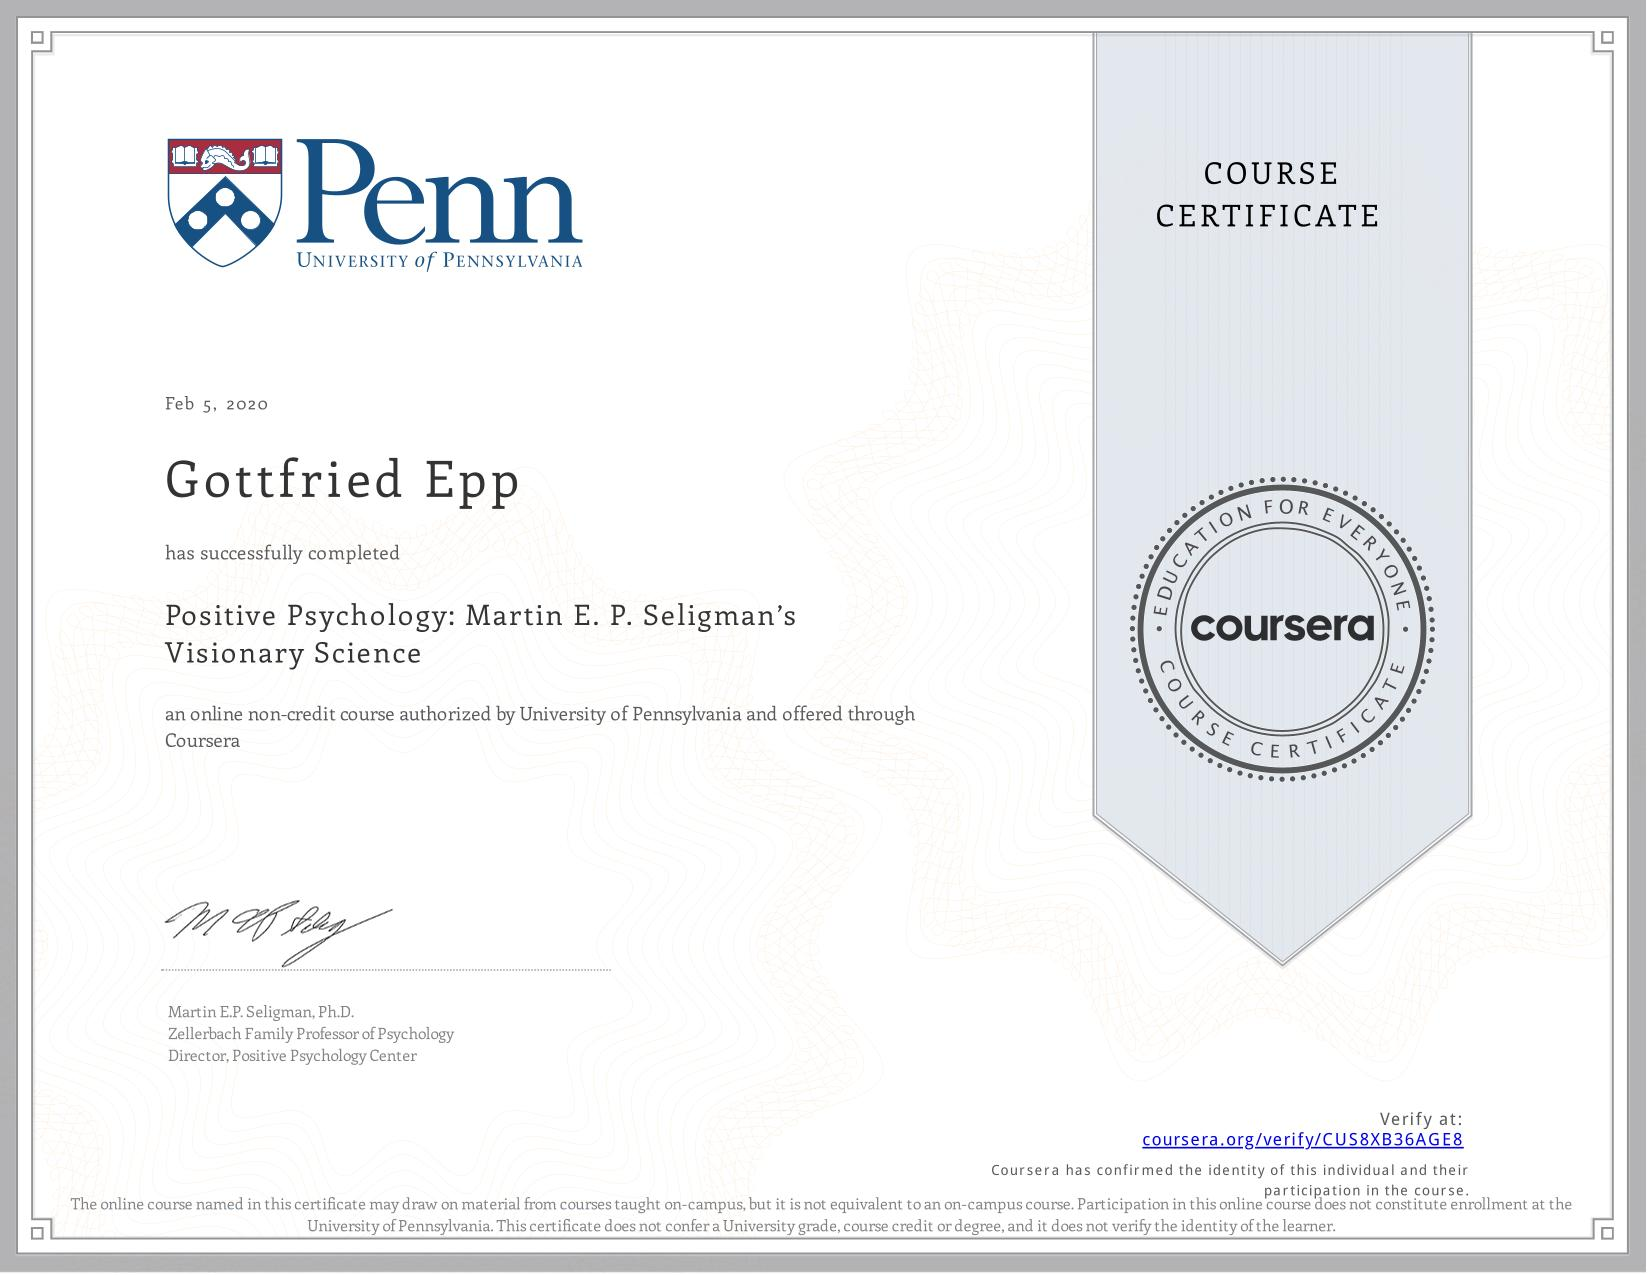 View certificate for Gottfried Epp, Positive Psychology: Martin E. P. Seligman's Visionary Science, an online non-credit course authorized by  & University of Pennsylvania and offered through Coursera